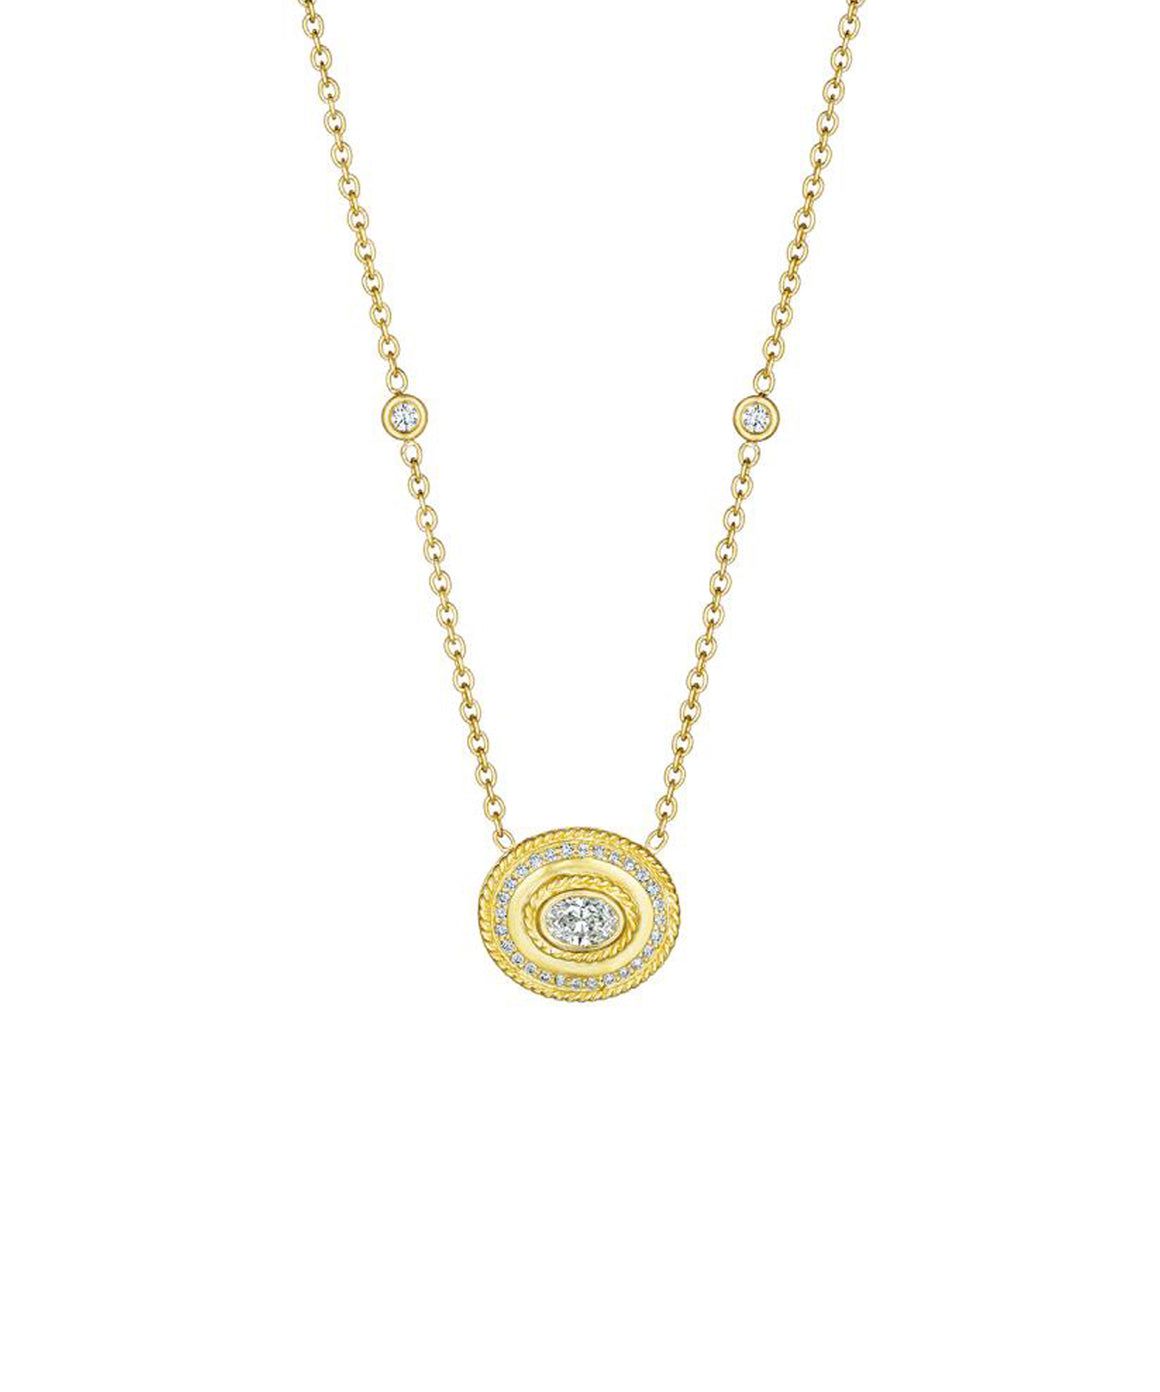 "The oval diamond is set crosswise in a matte finished frame detailed with milgraining and pavé diamonds. Total diamond weight is .62 carat. The pendant is 5/8"" across and hangs from an 18"" chain."